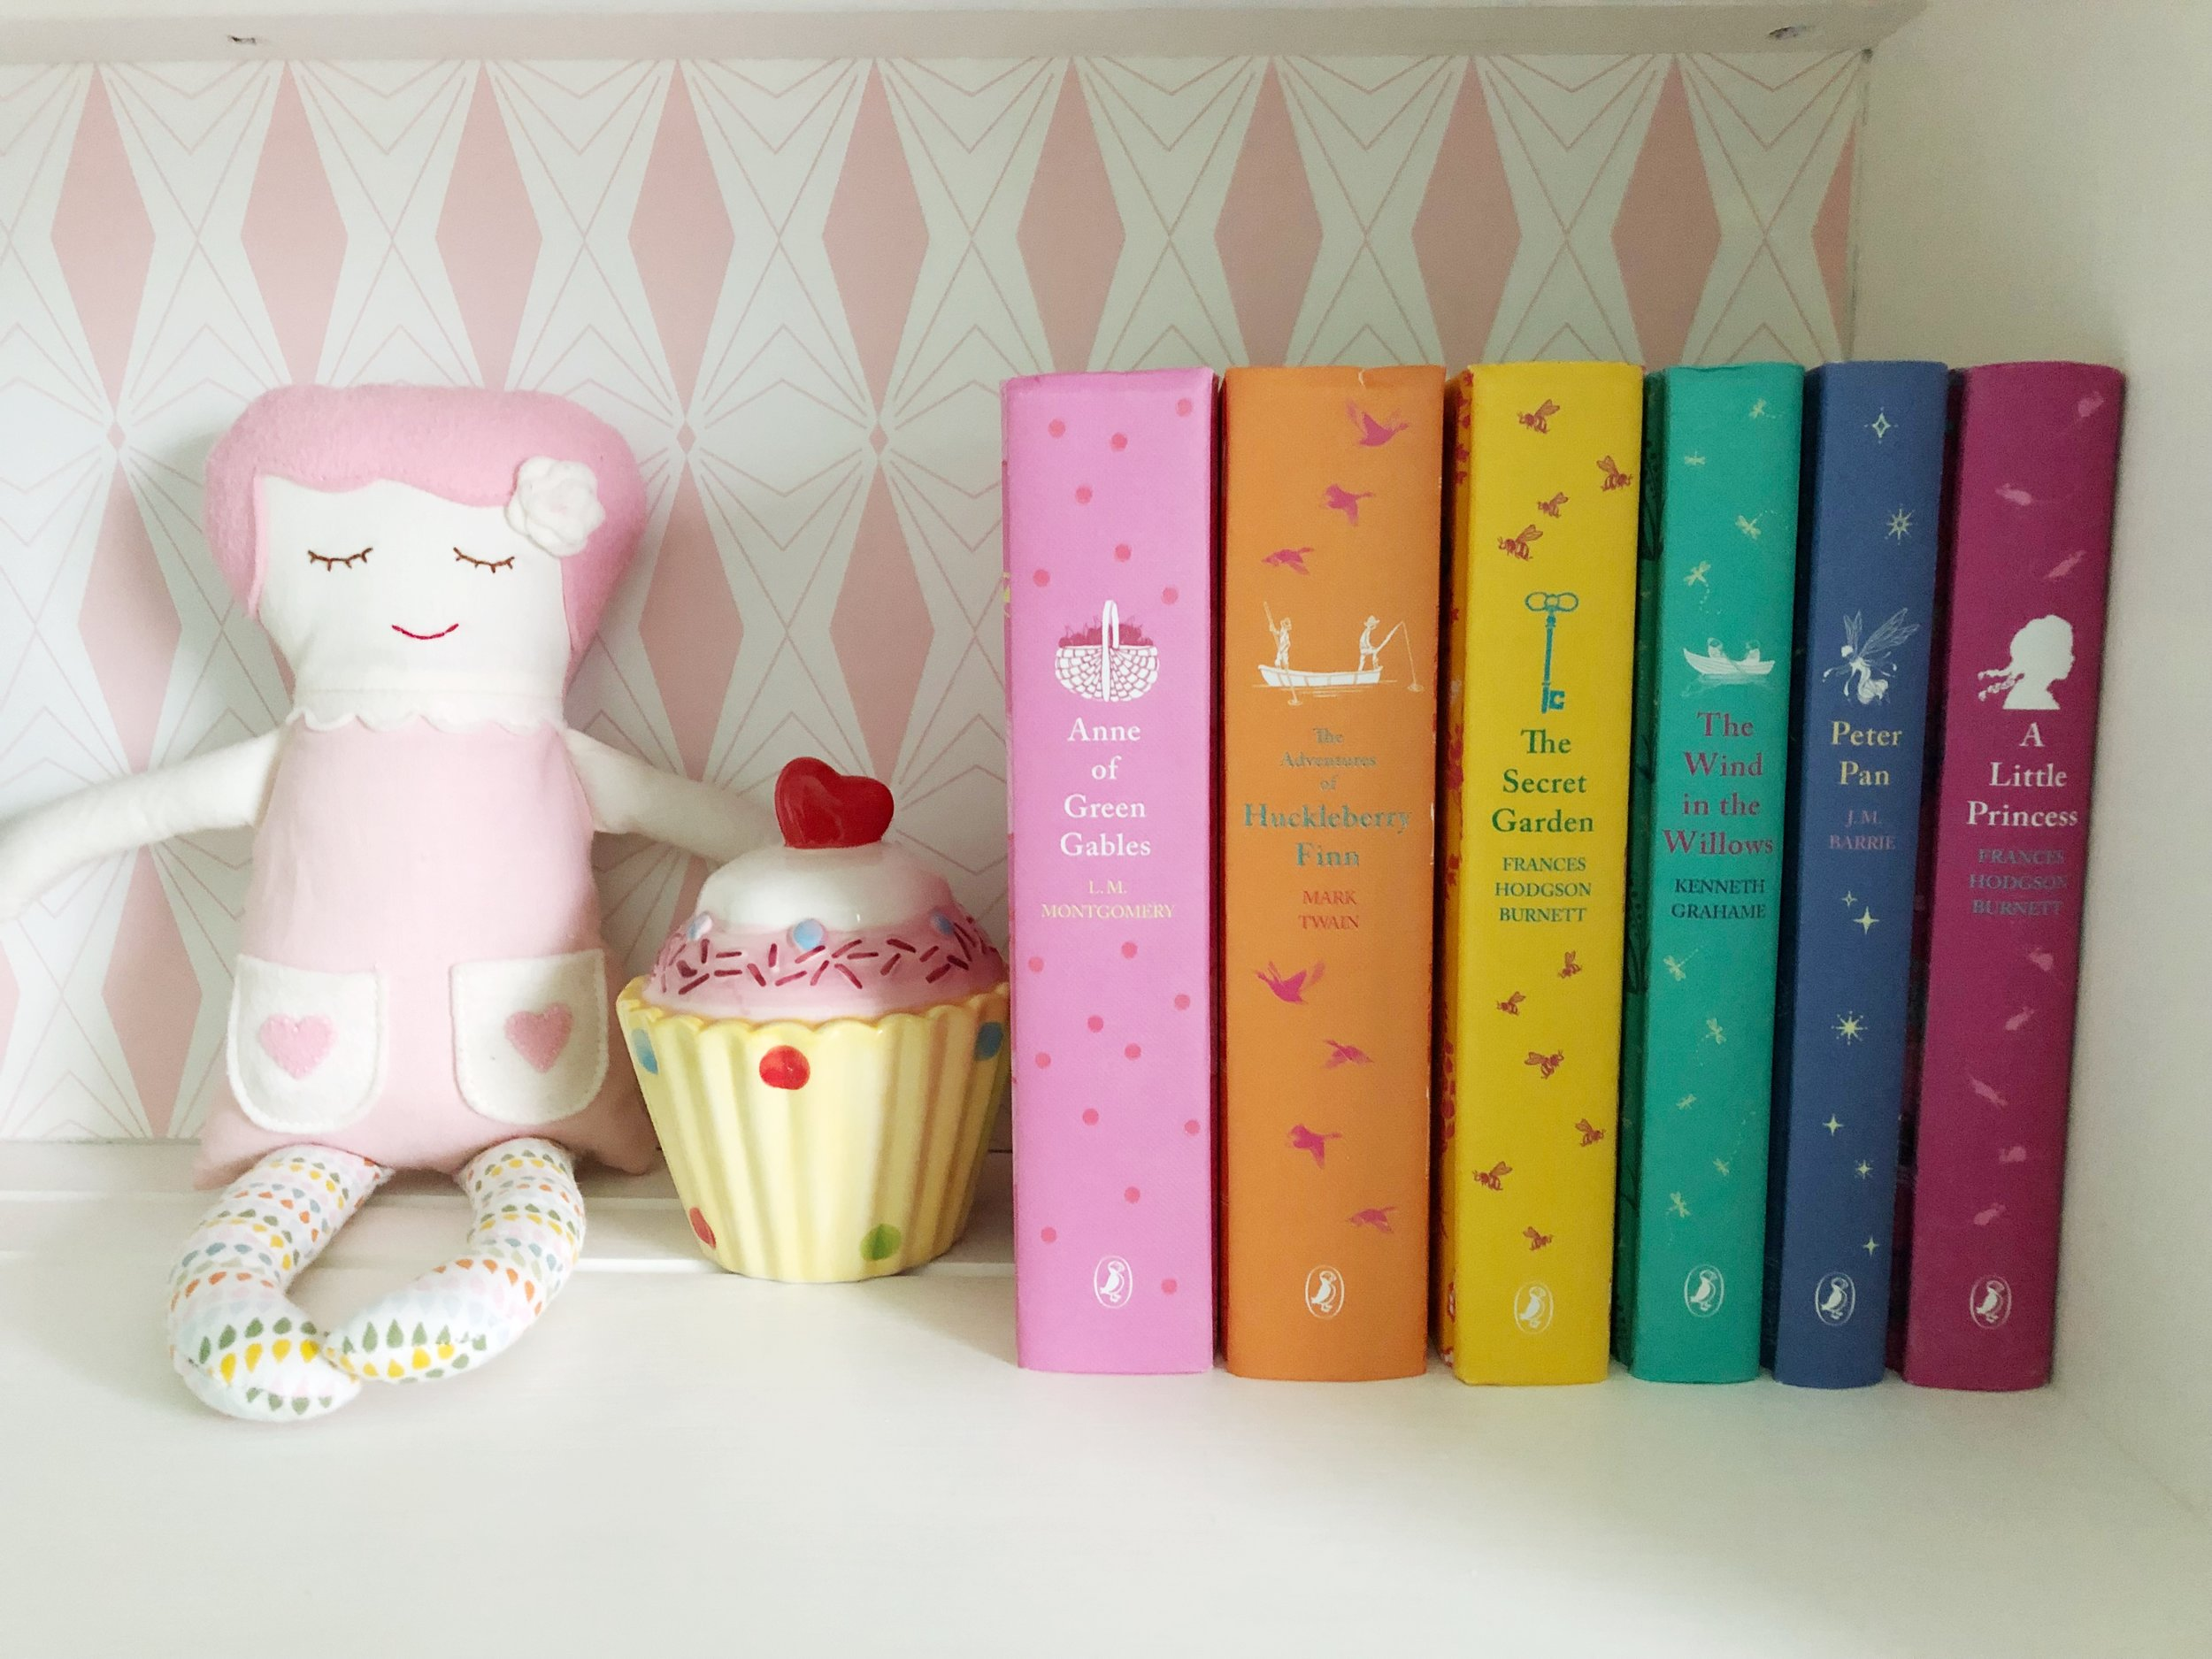 Pretty Books and Black Apple Doll.